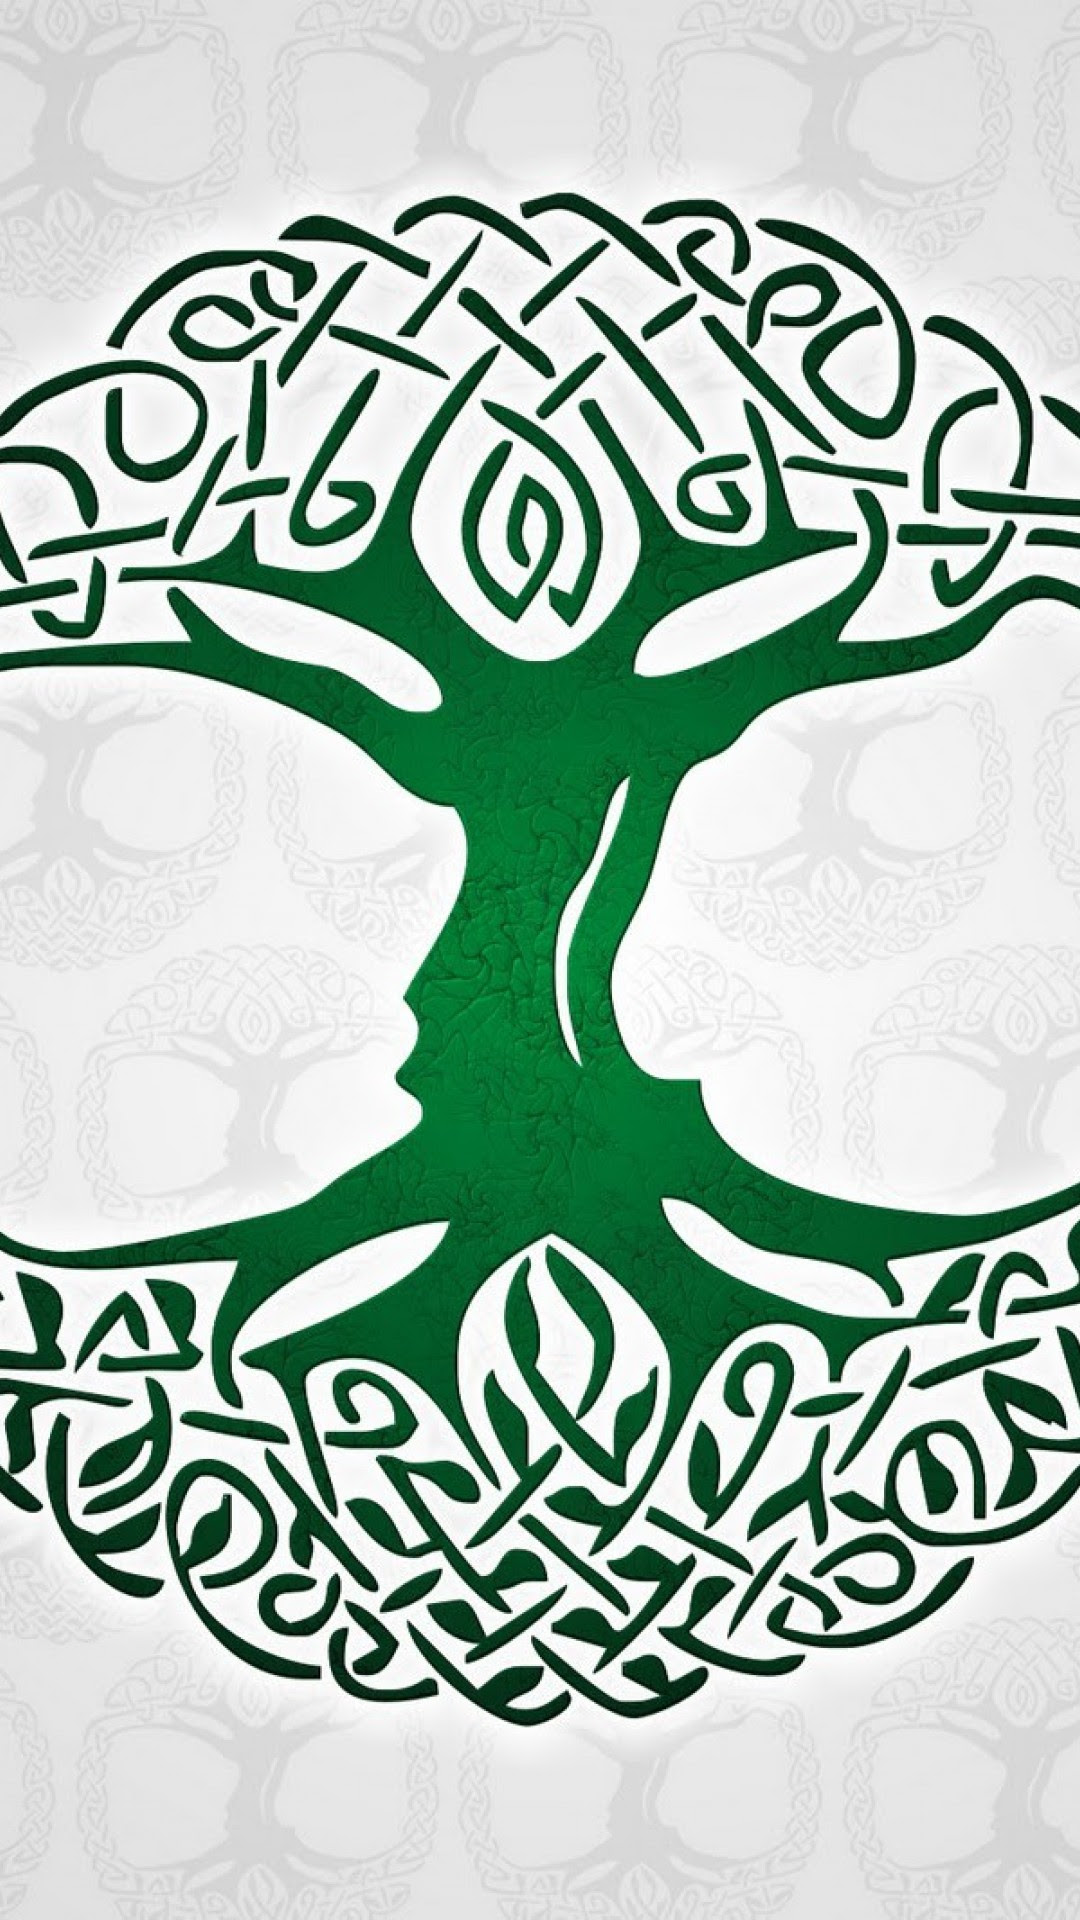 Celtic Tree Of Life Hd Wallpaper Iphone 6 6s Plus Hd Wallpaper